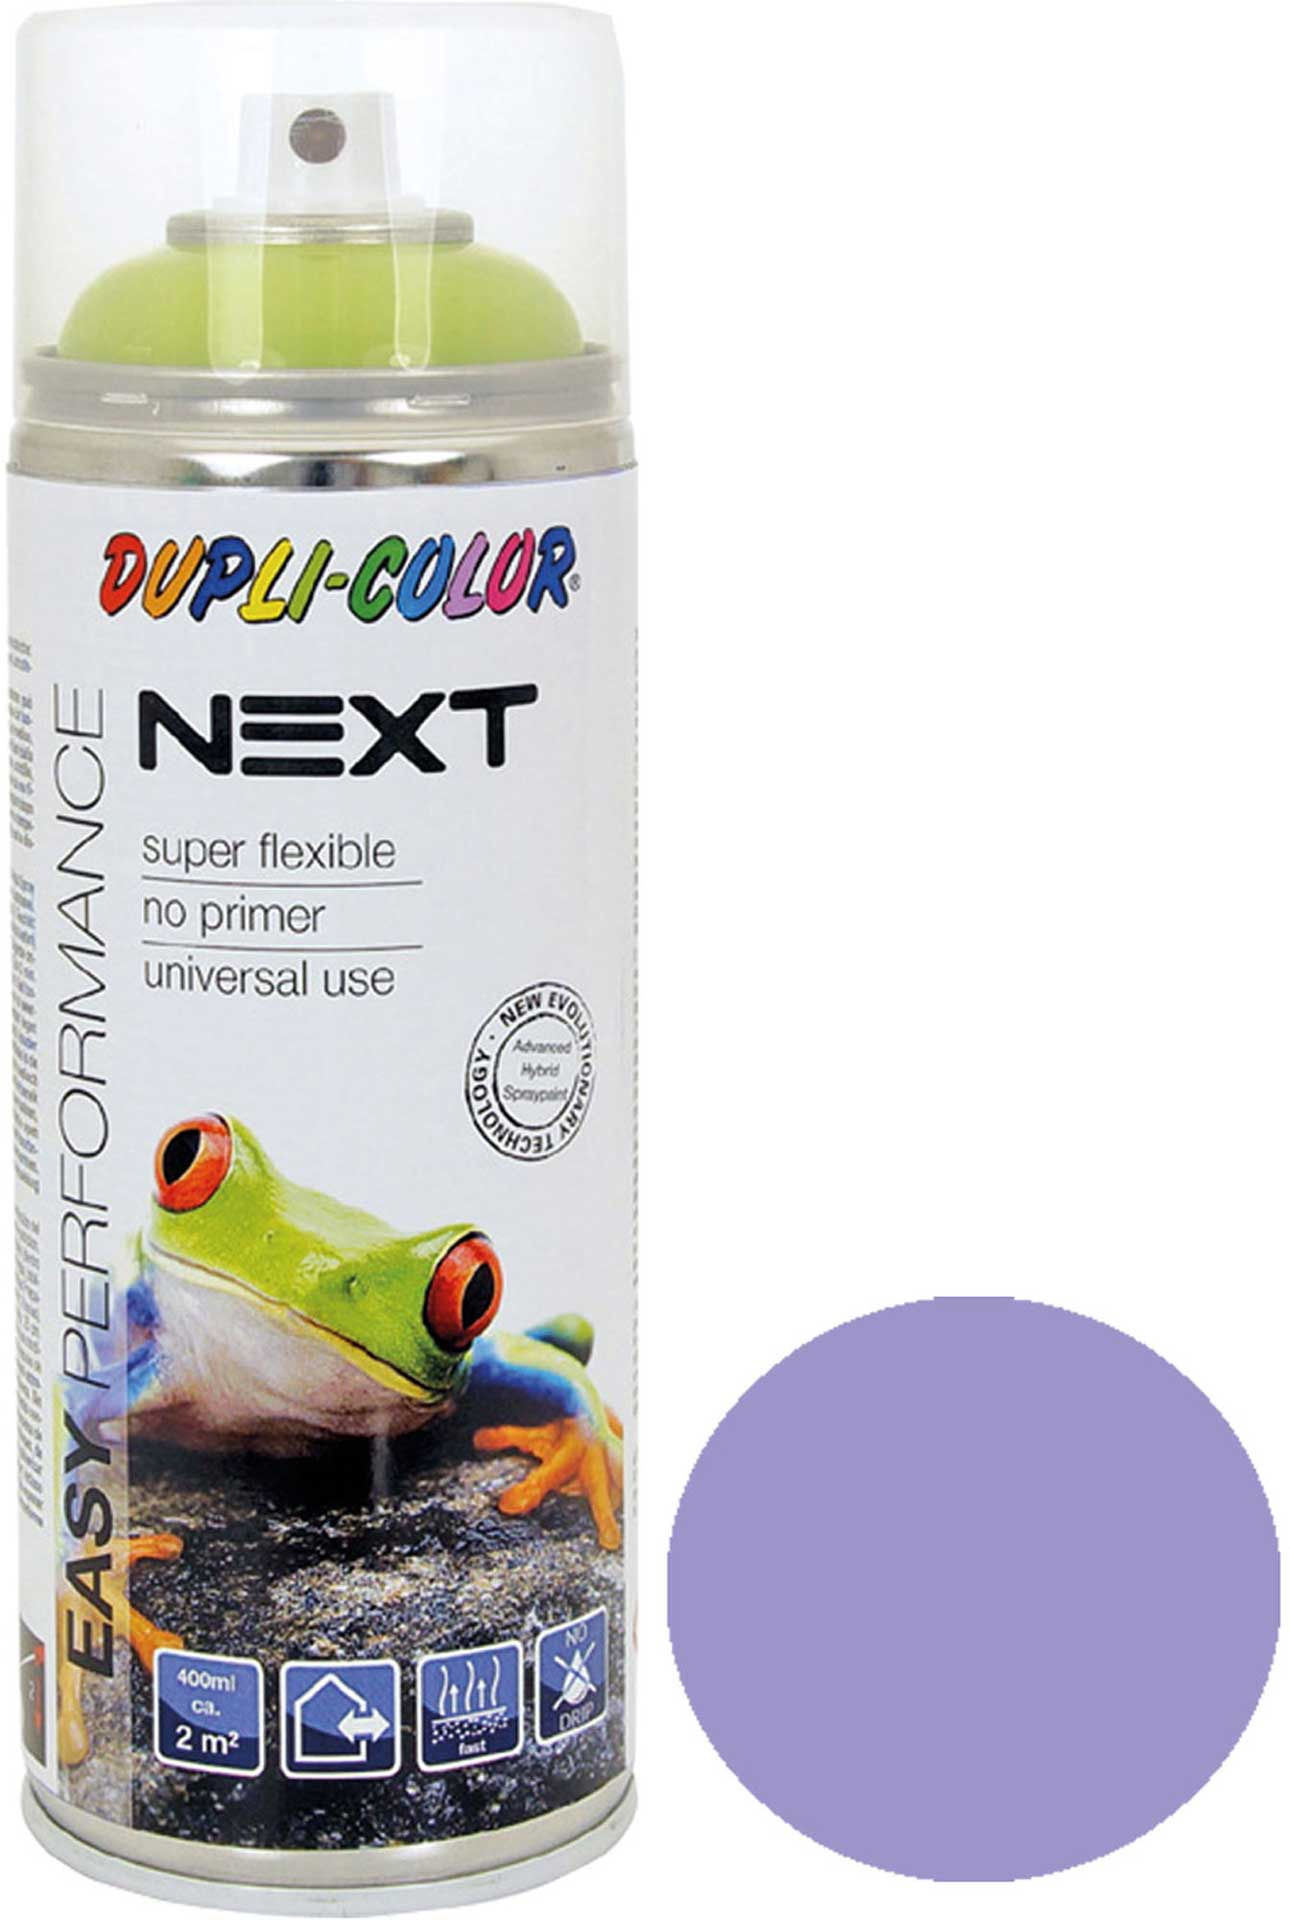 DUPLI-COLOR NEXT KIEV LAVENDER SDM. 400ML SPRAY PAINT